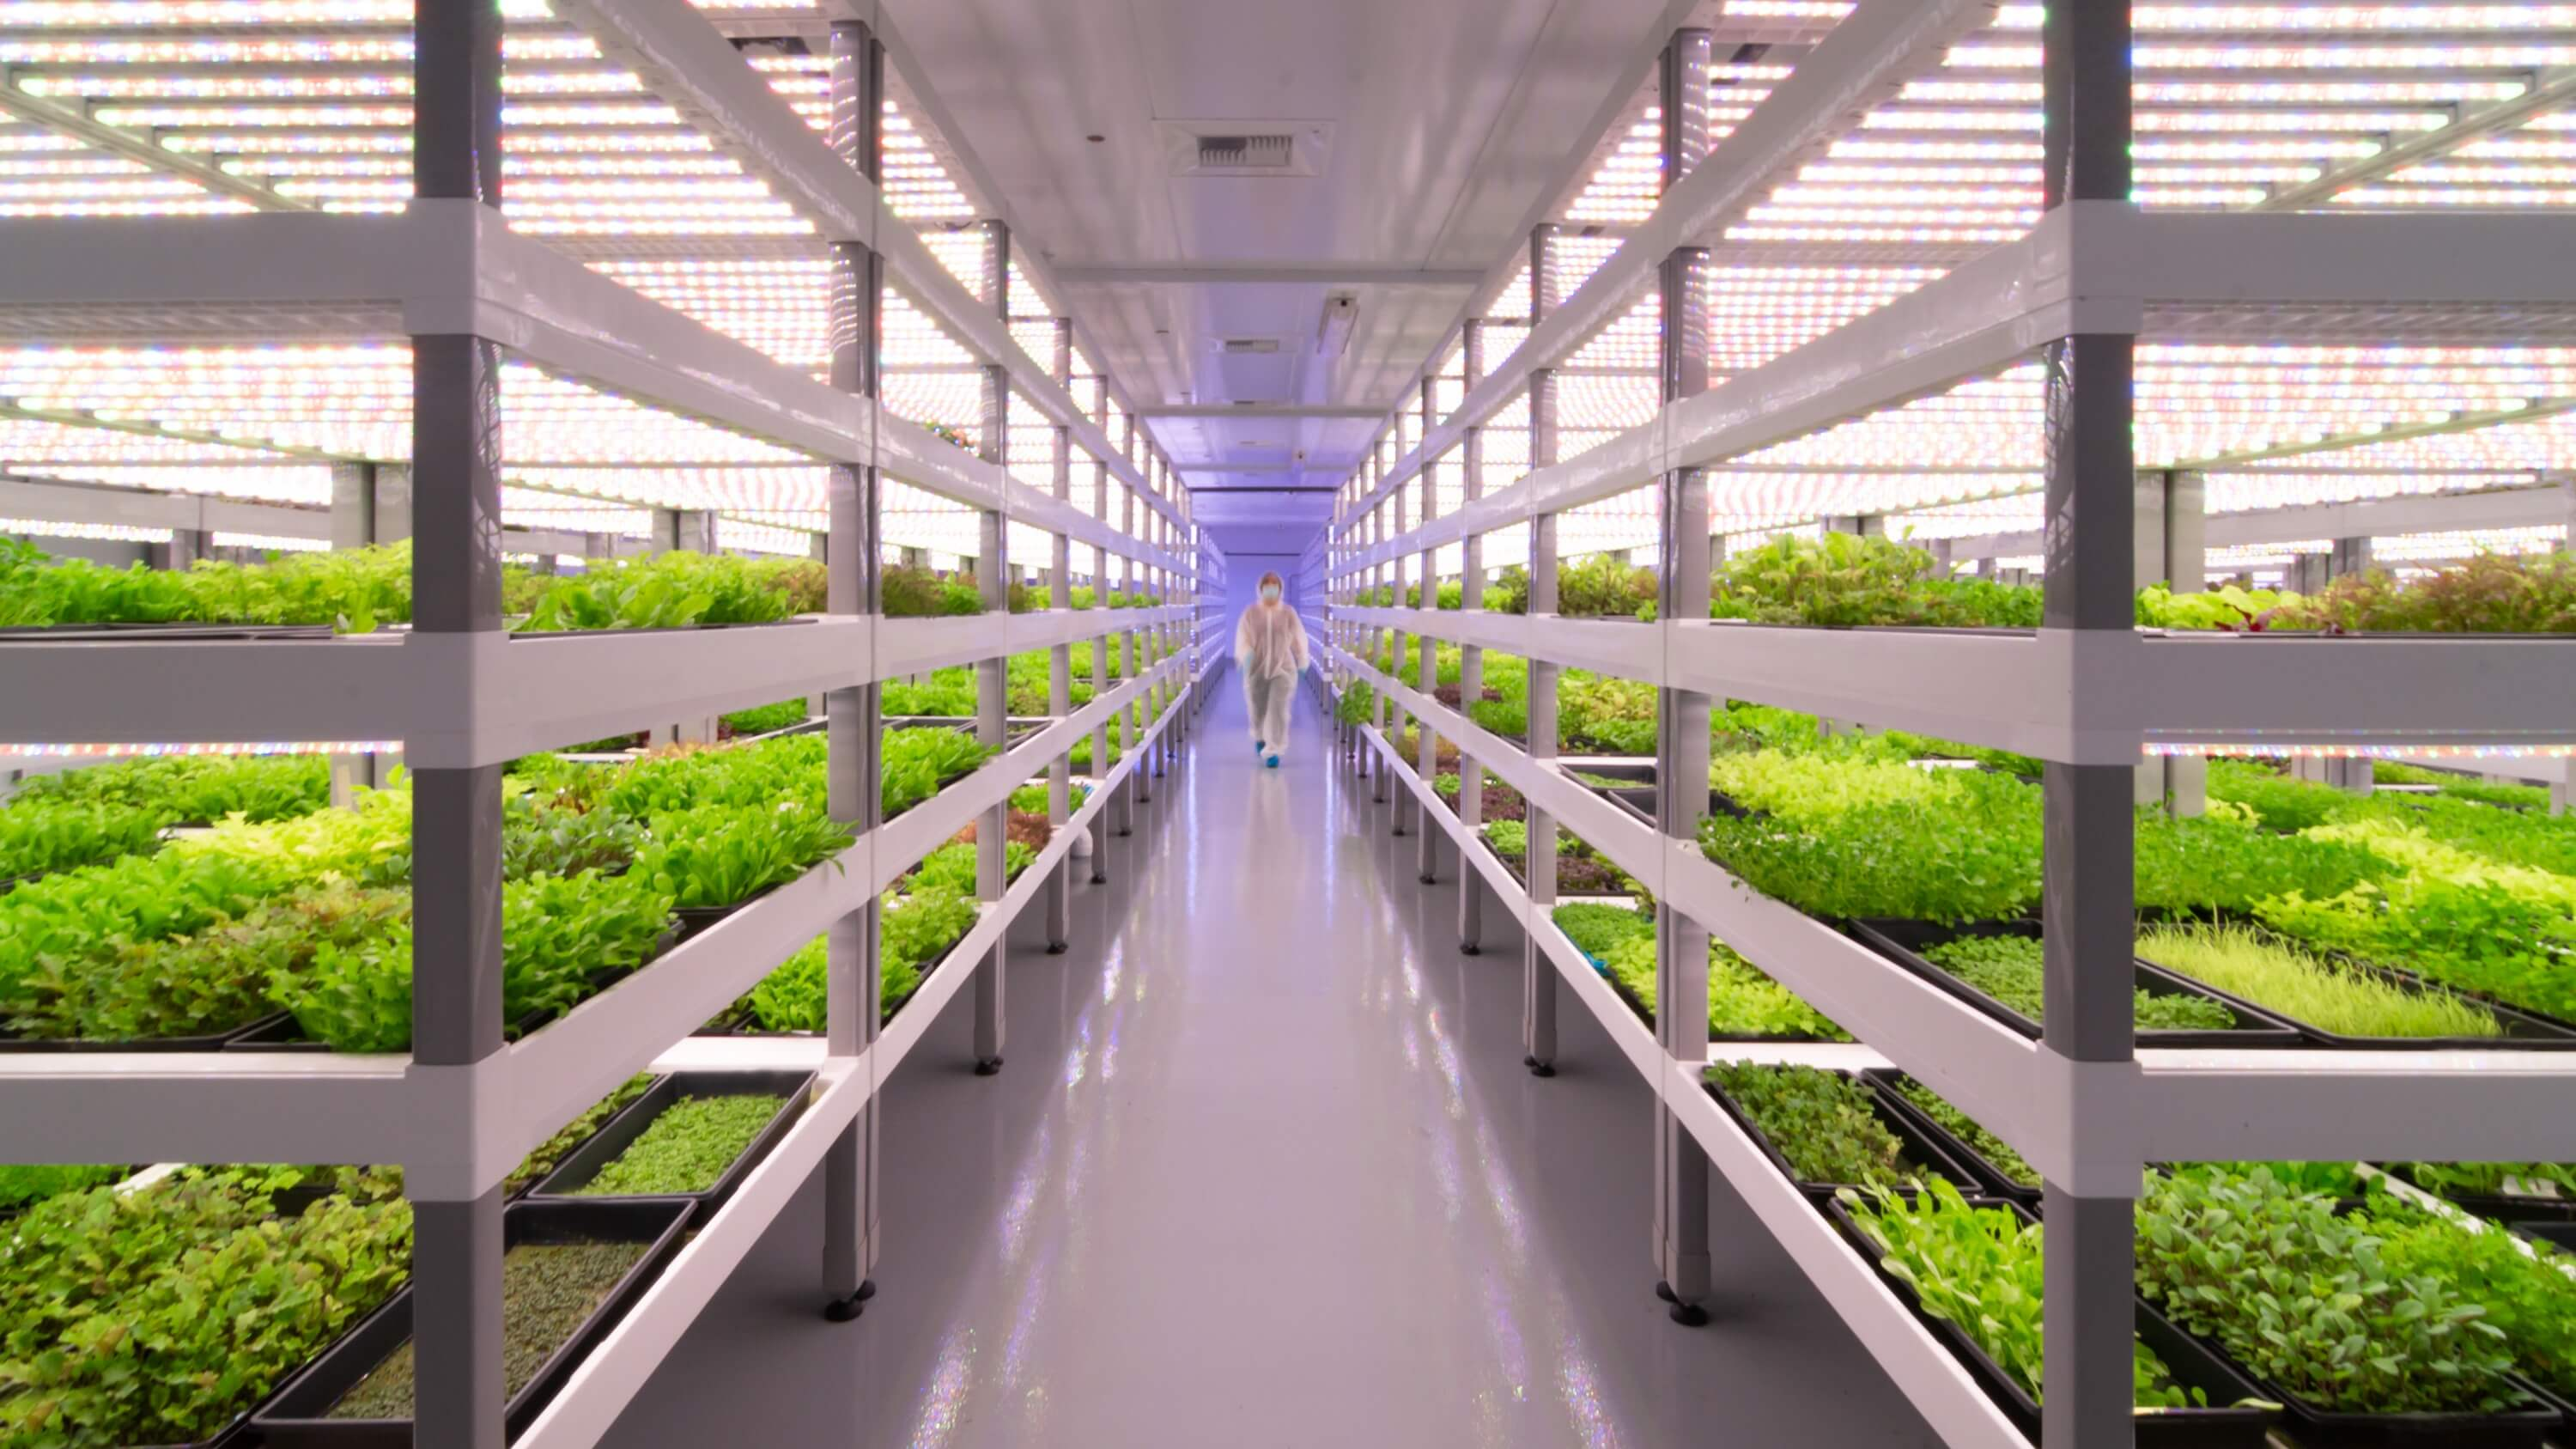 Giant Las Vegas Vertical Farm to Produce 1 Million Pounds of Produce Each Year